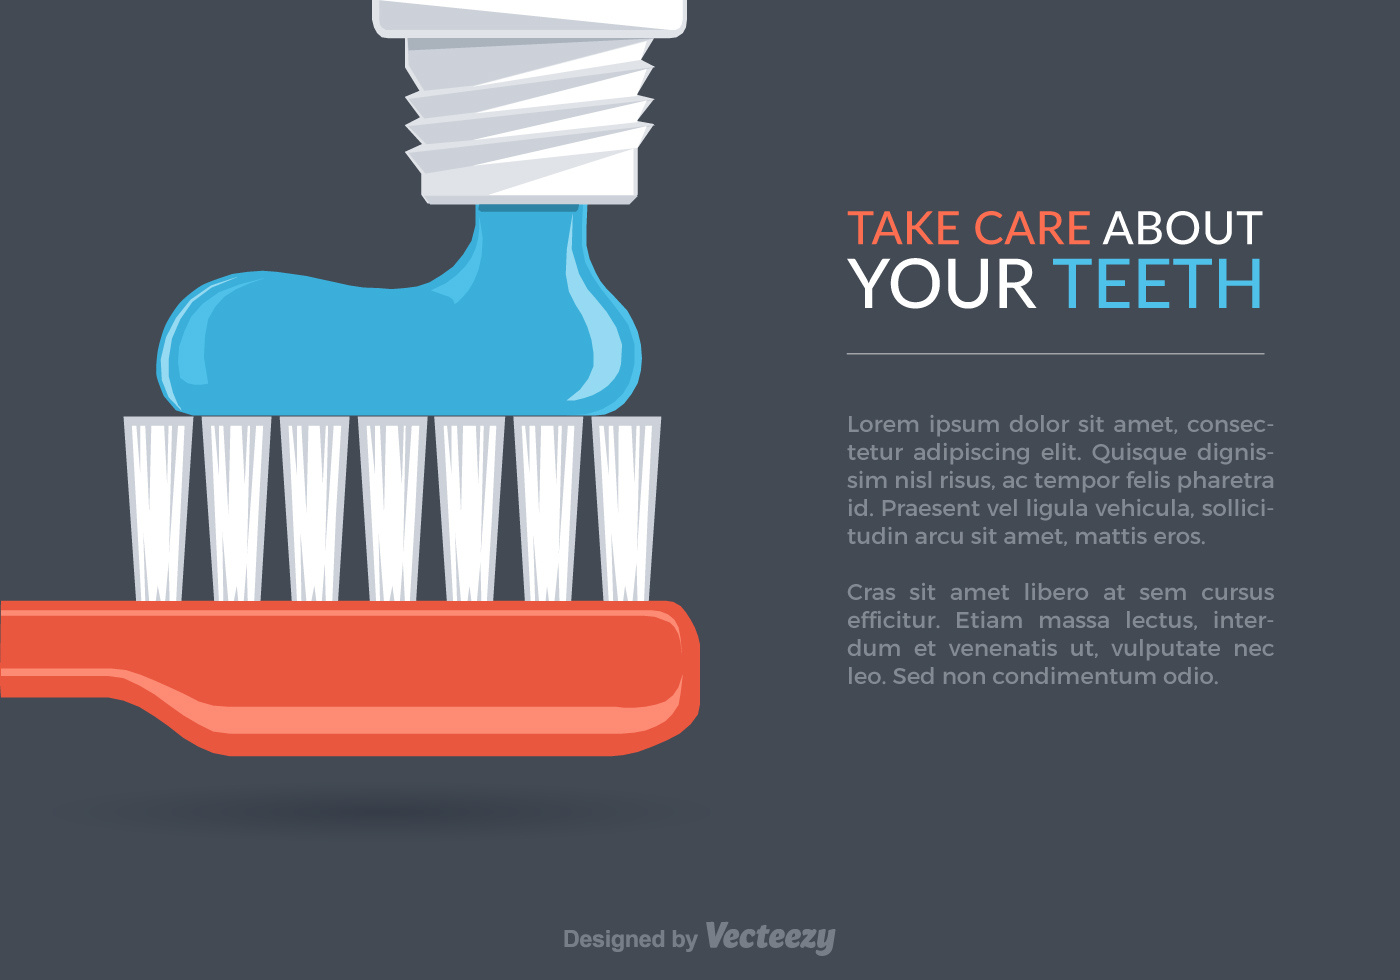 free-dental-care-vector-background.jpg